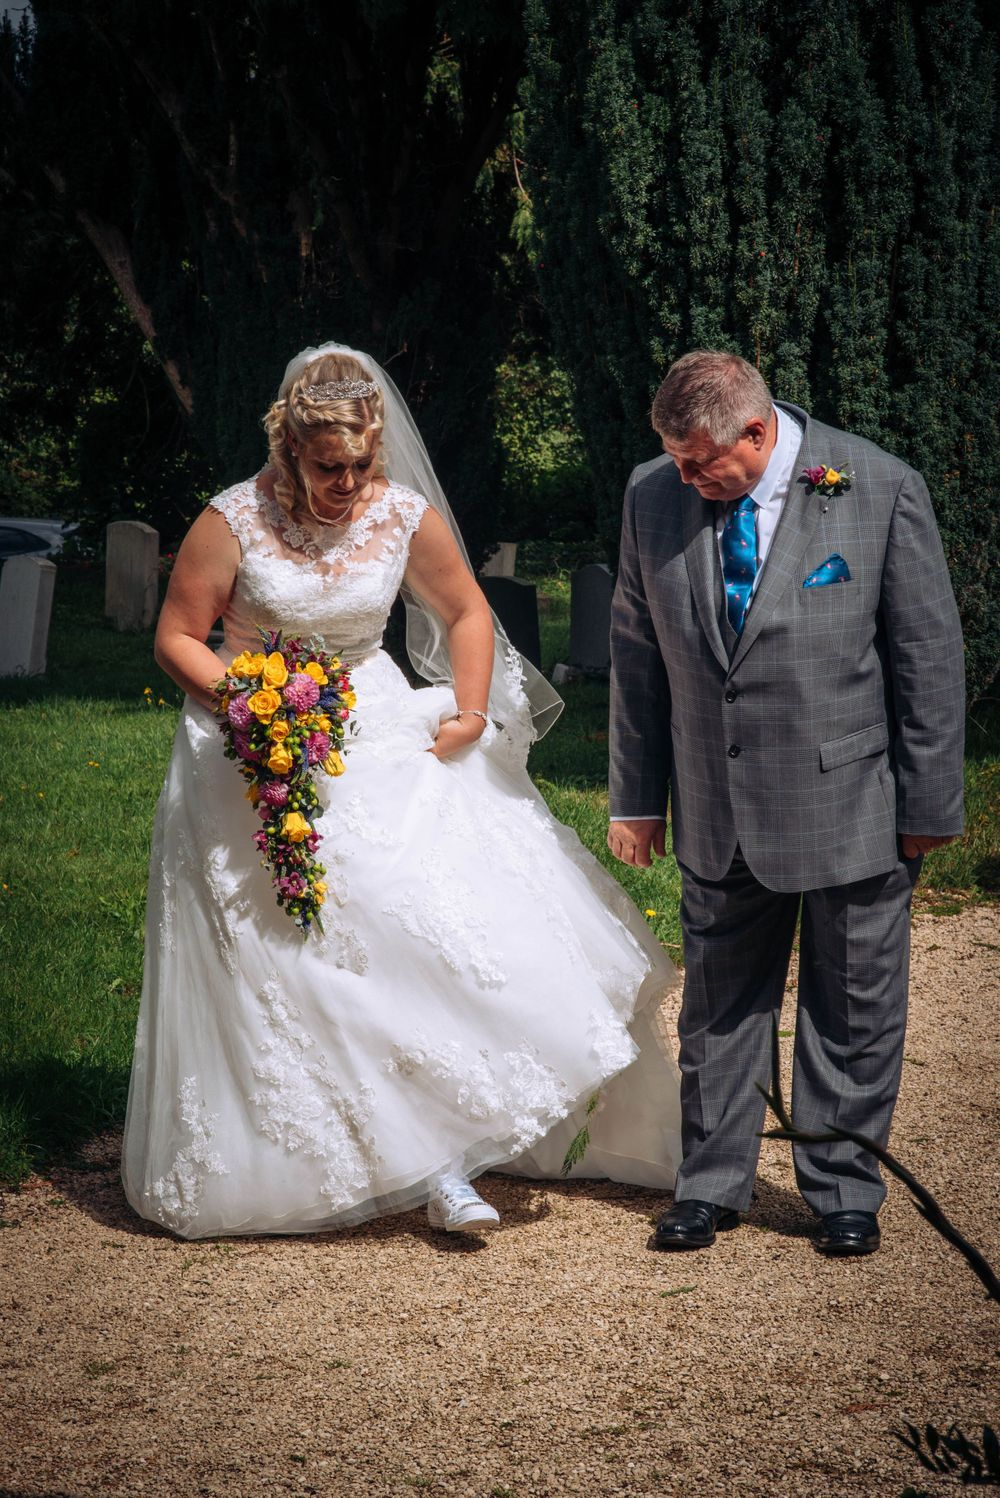 Elmore wedding by Zara Davis Photography, Gloucestershire Father of the bride and daughter